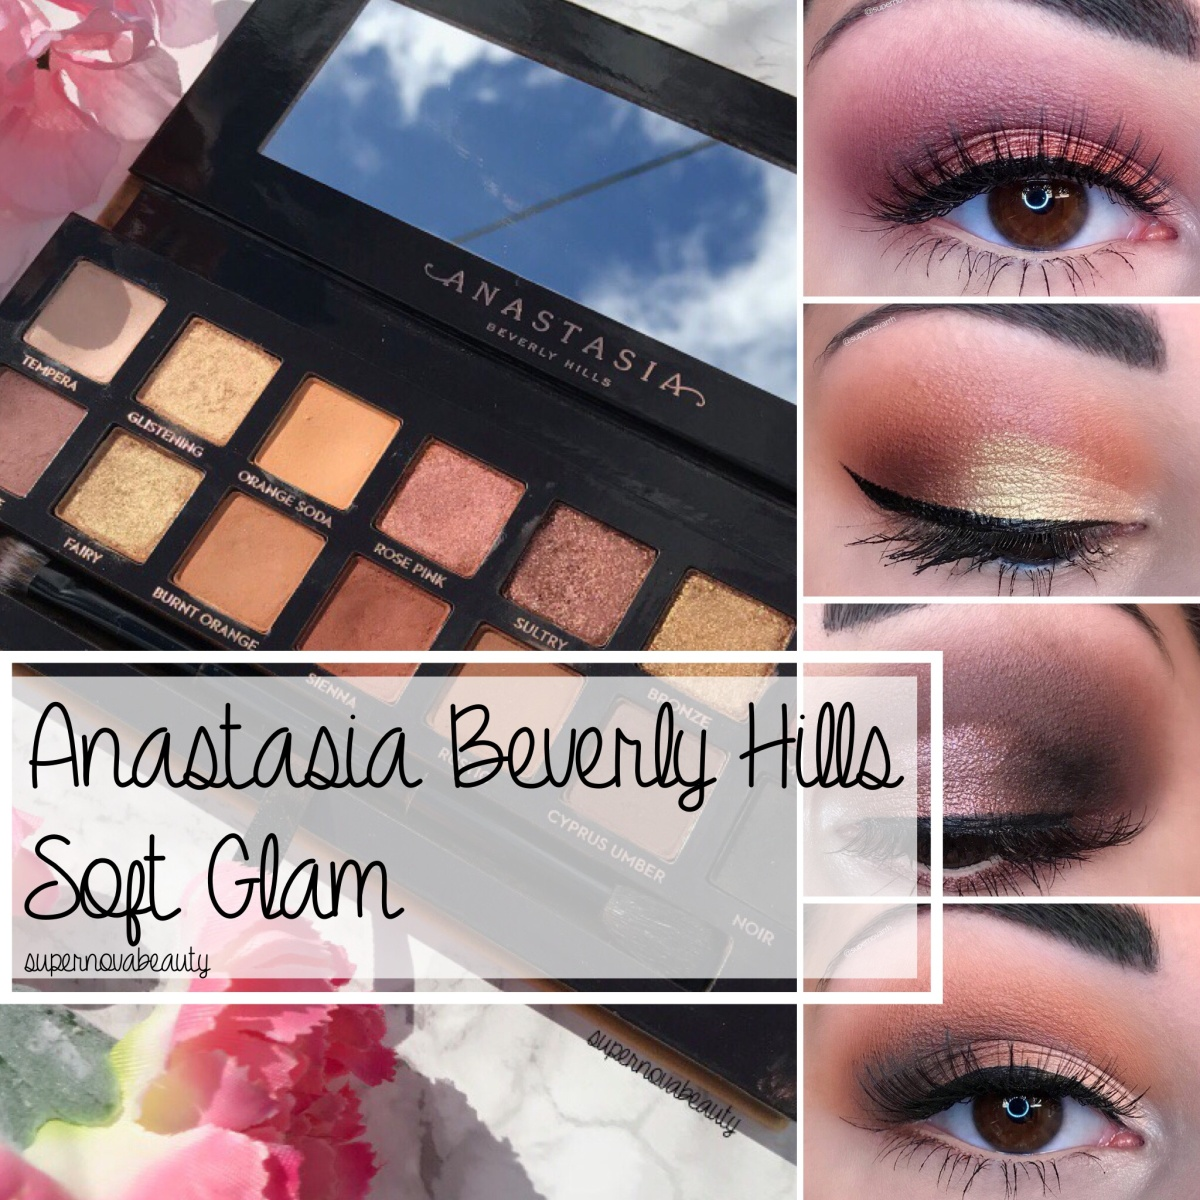 Anastasia Beverly Hills Soft Glam | Review, Swatches + 5 Looks